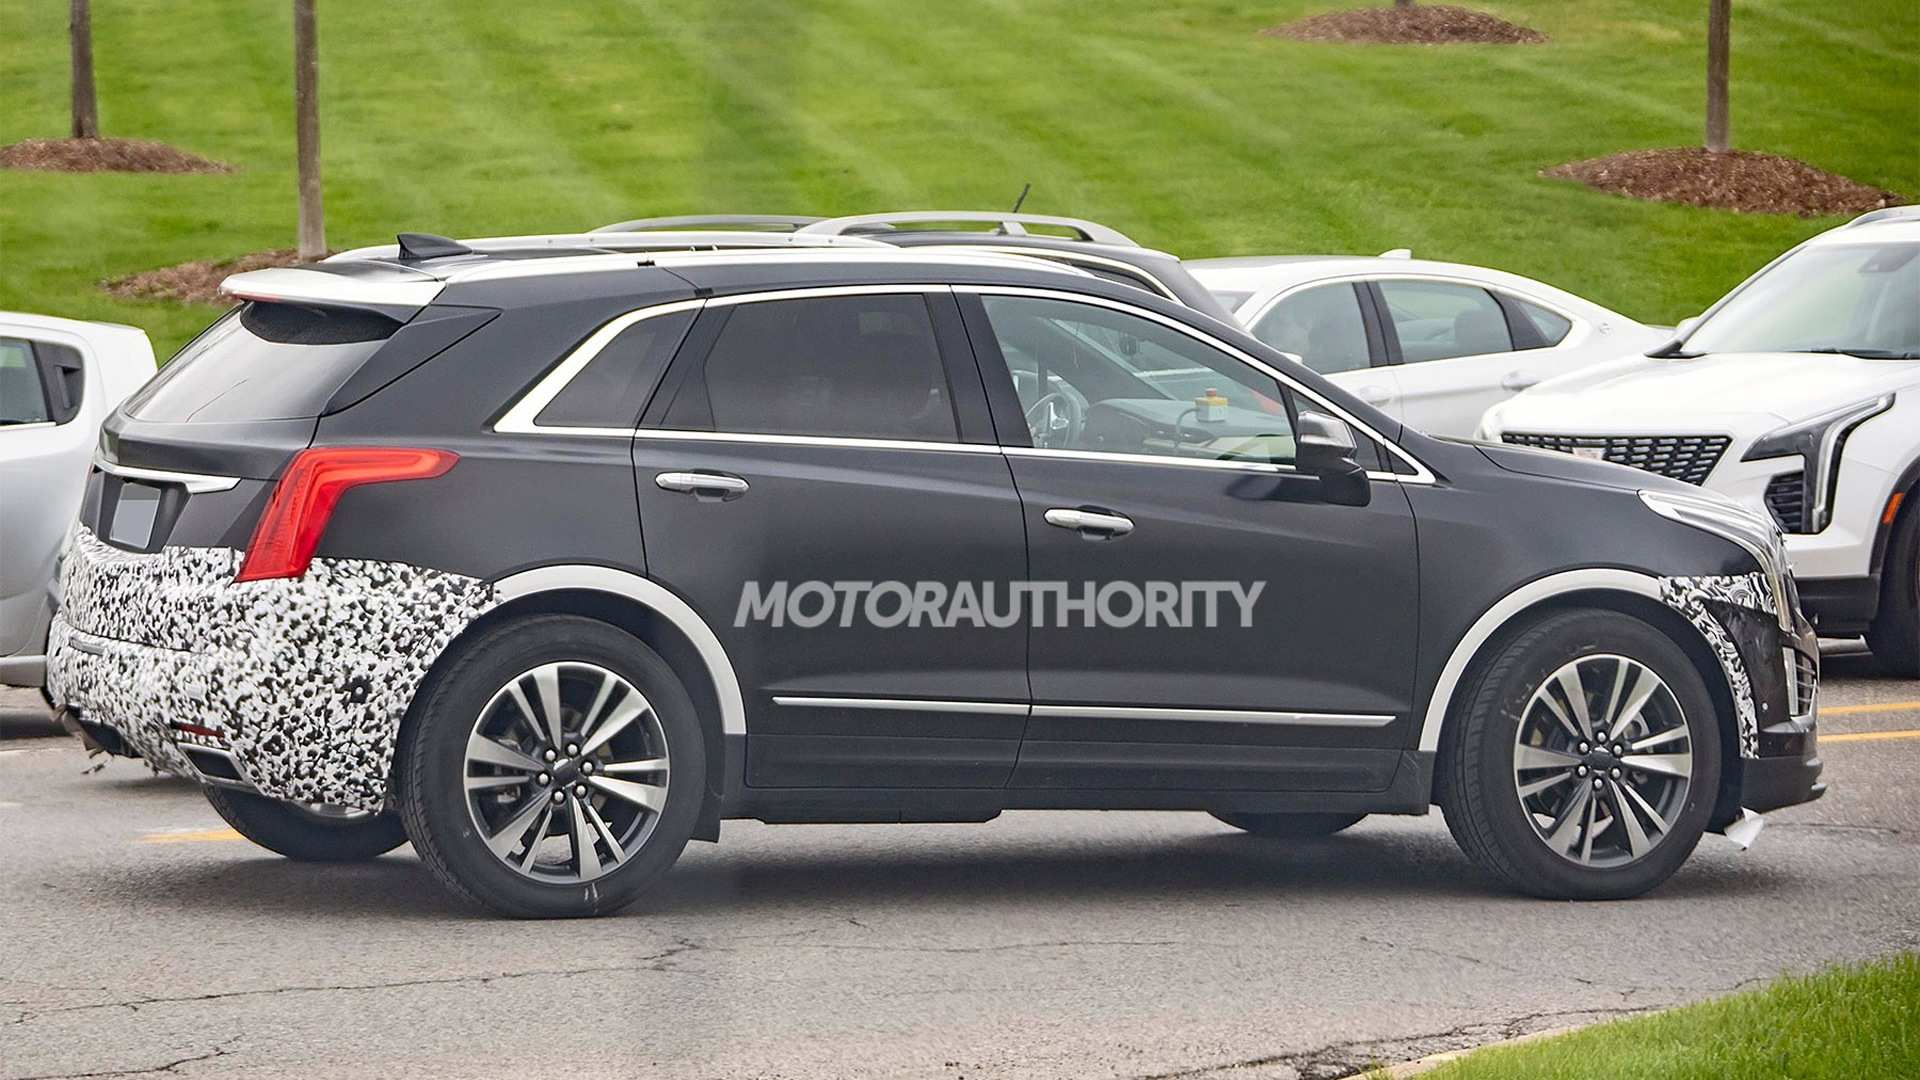 25 Gallery of New Cadillac Xt5 2020 Research New for New Cadillac Xt5 2020